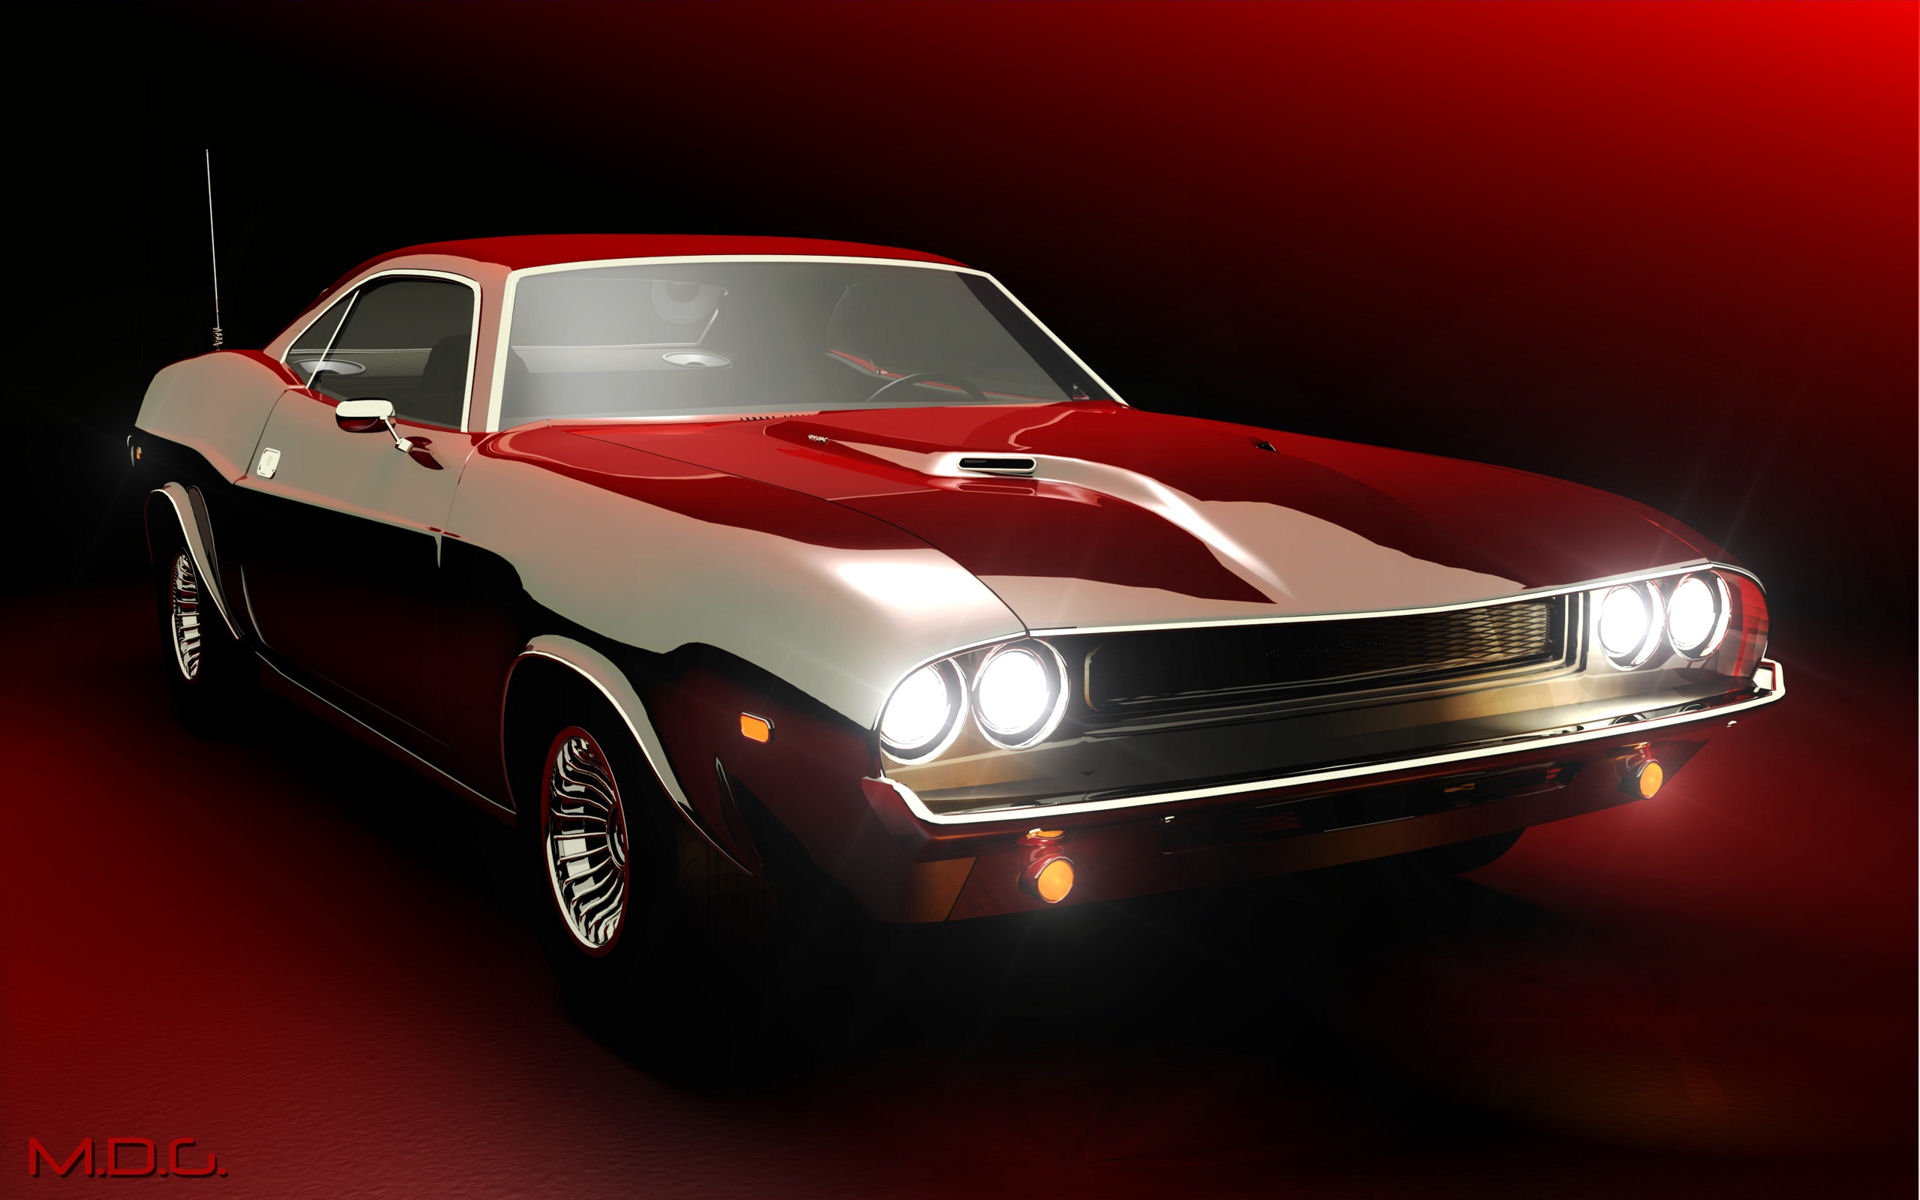 HD Wallpaper Muscle Cars